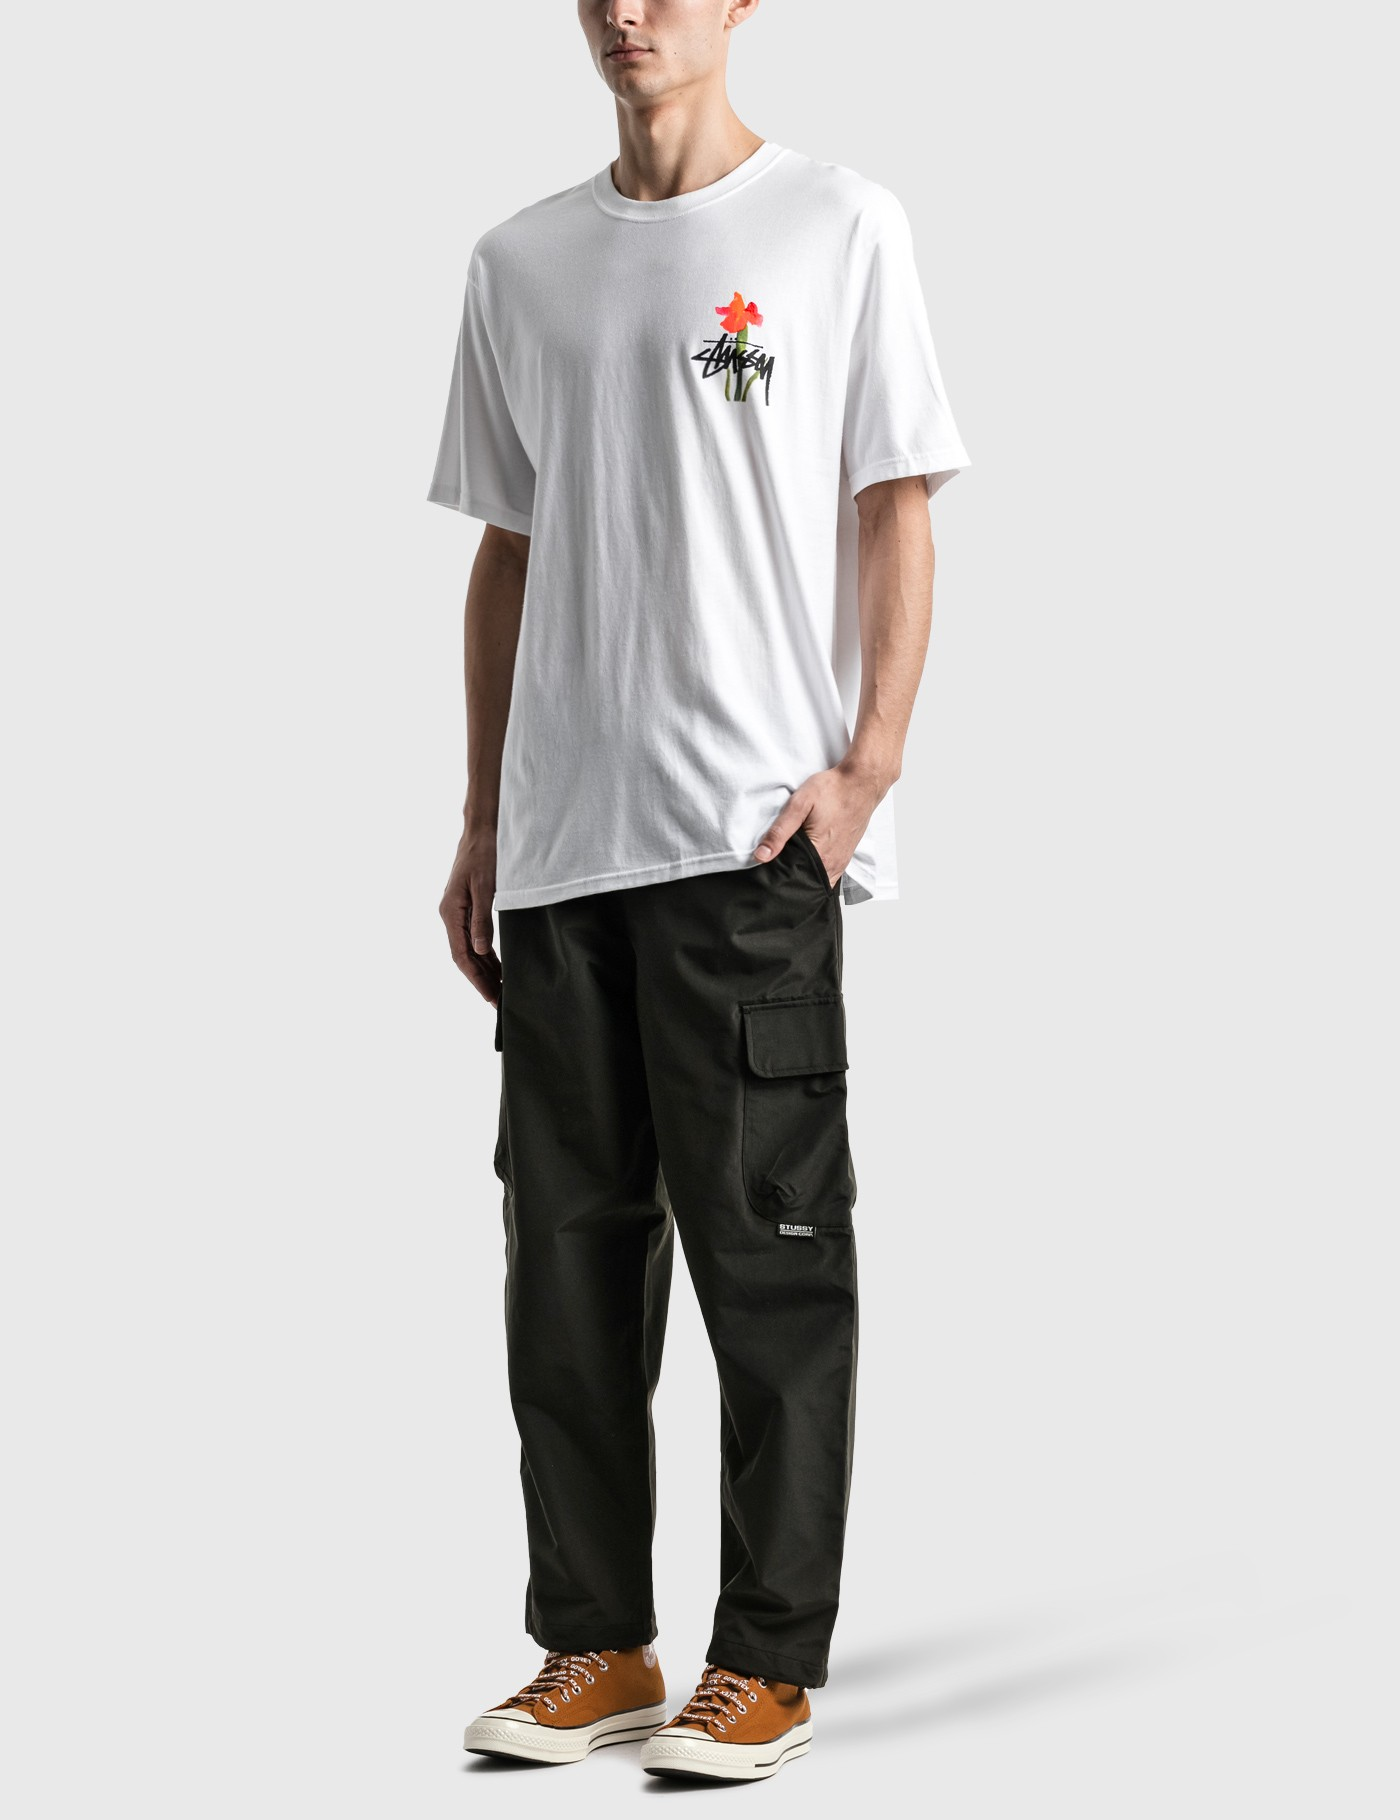 Stussy Water Flowers T-Shirt